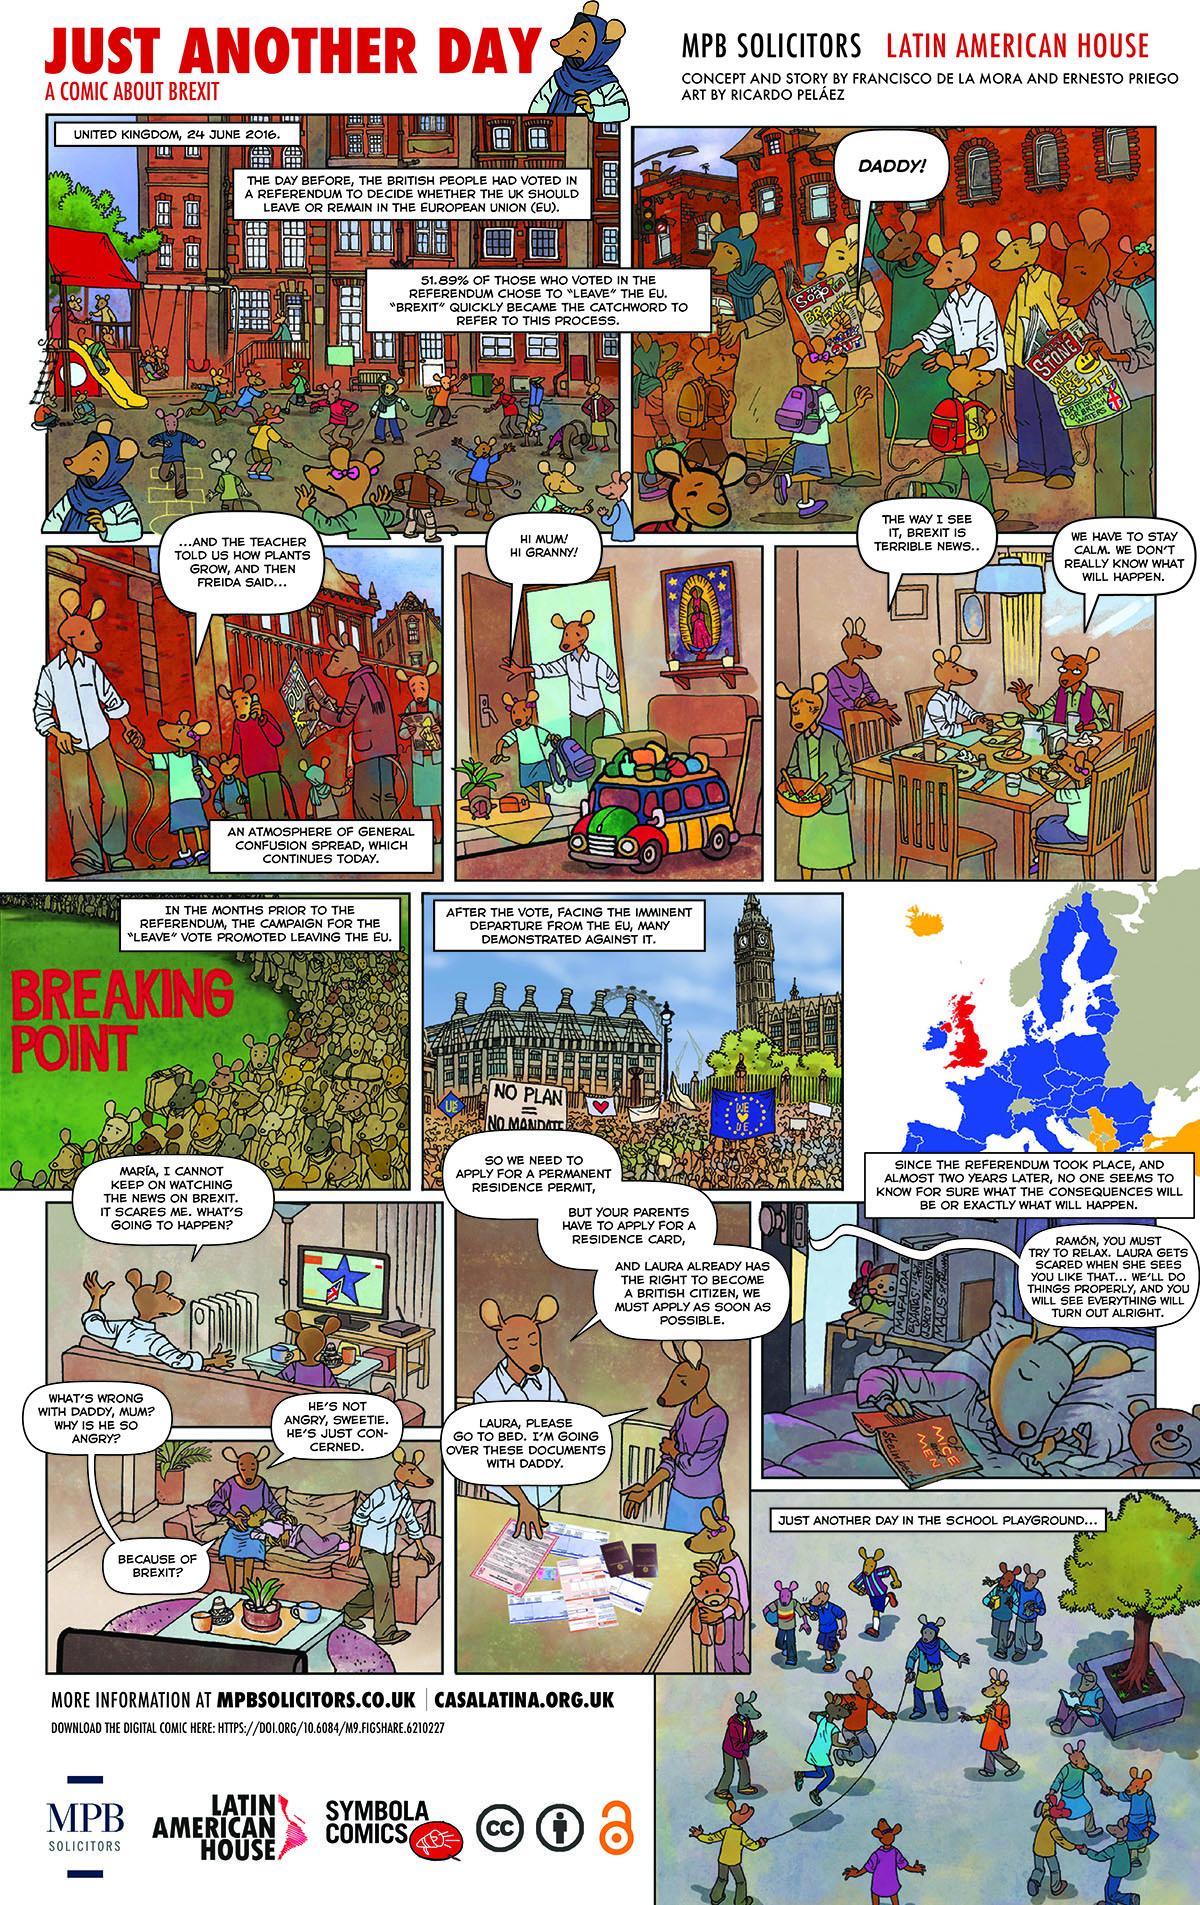 de la Mora, F., Priego, E., Peláez, R., Behar, M. P., and Rocha, D., 2018. Just Another Day: A Comic About Brexit. Available from: https://doi.org/10.6084/m9.figshare.6210227